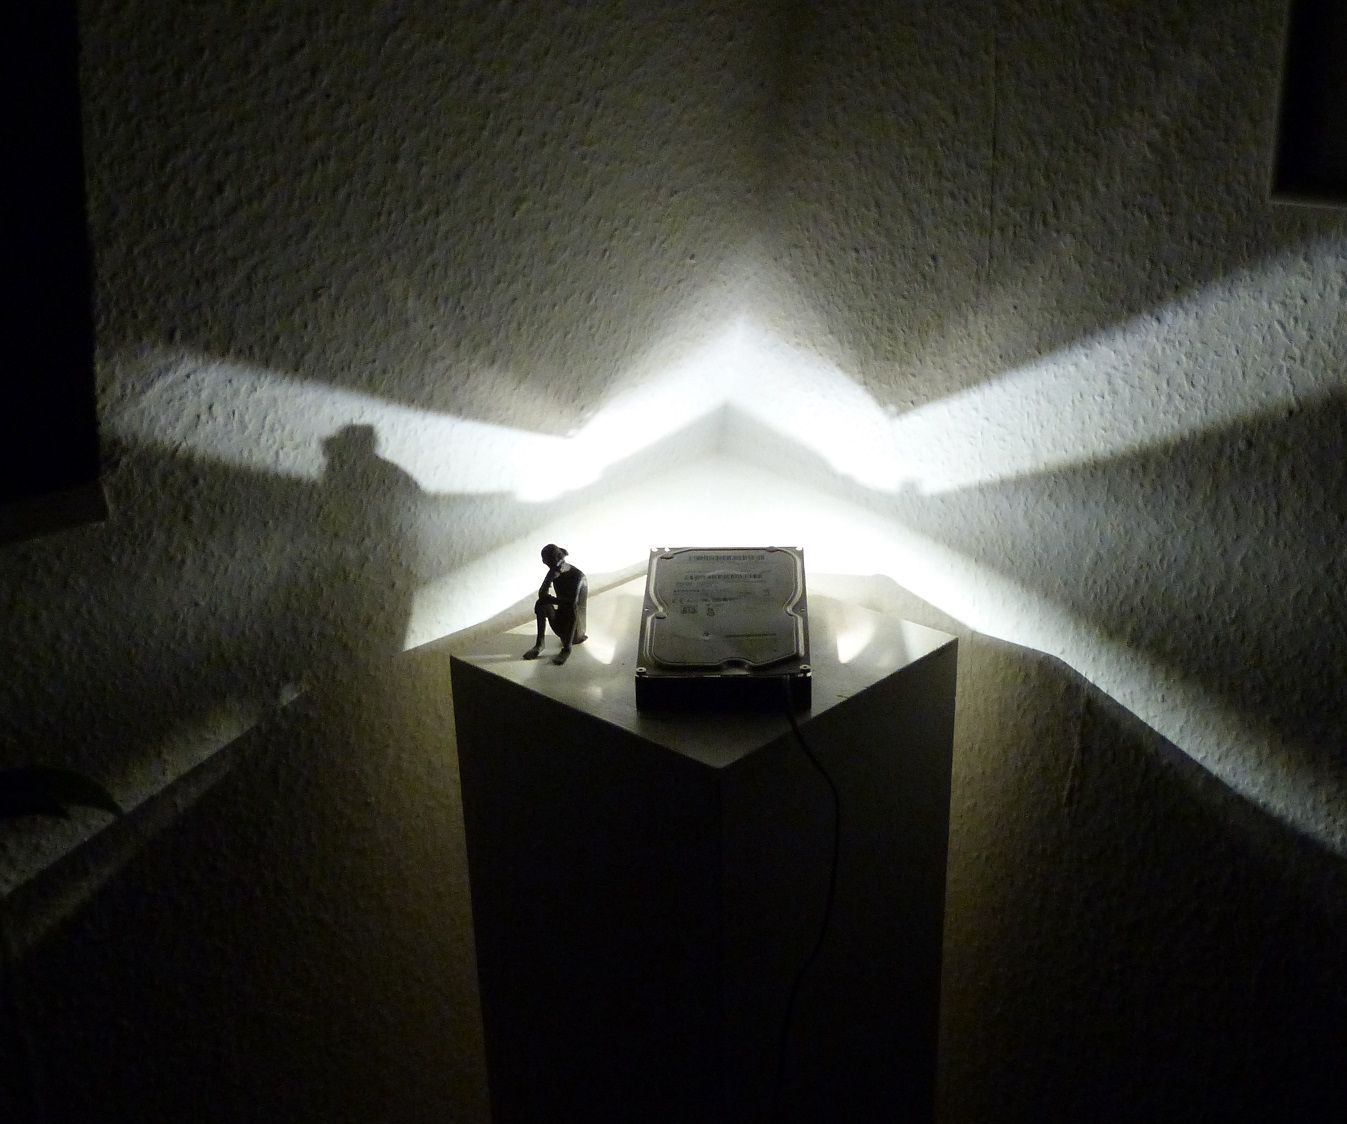 Craft a futuristic room light upcycled out of an old hard disc drive